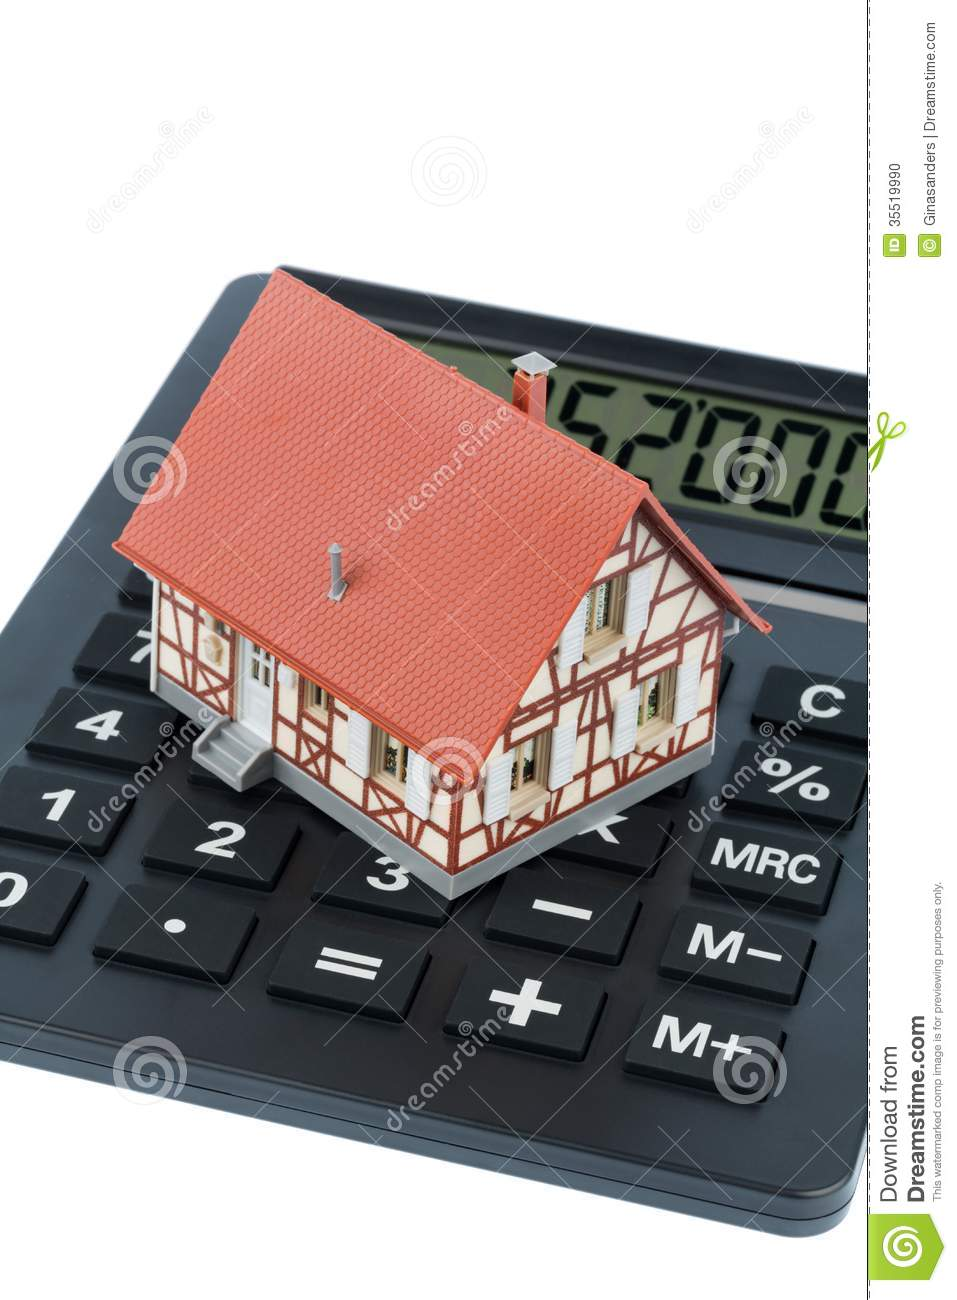 Residential house on calculator stock photo image 35519990 for Build a house calculator free